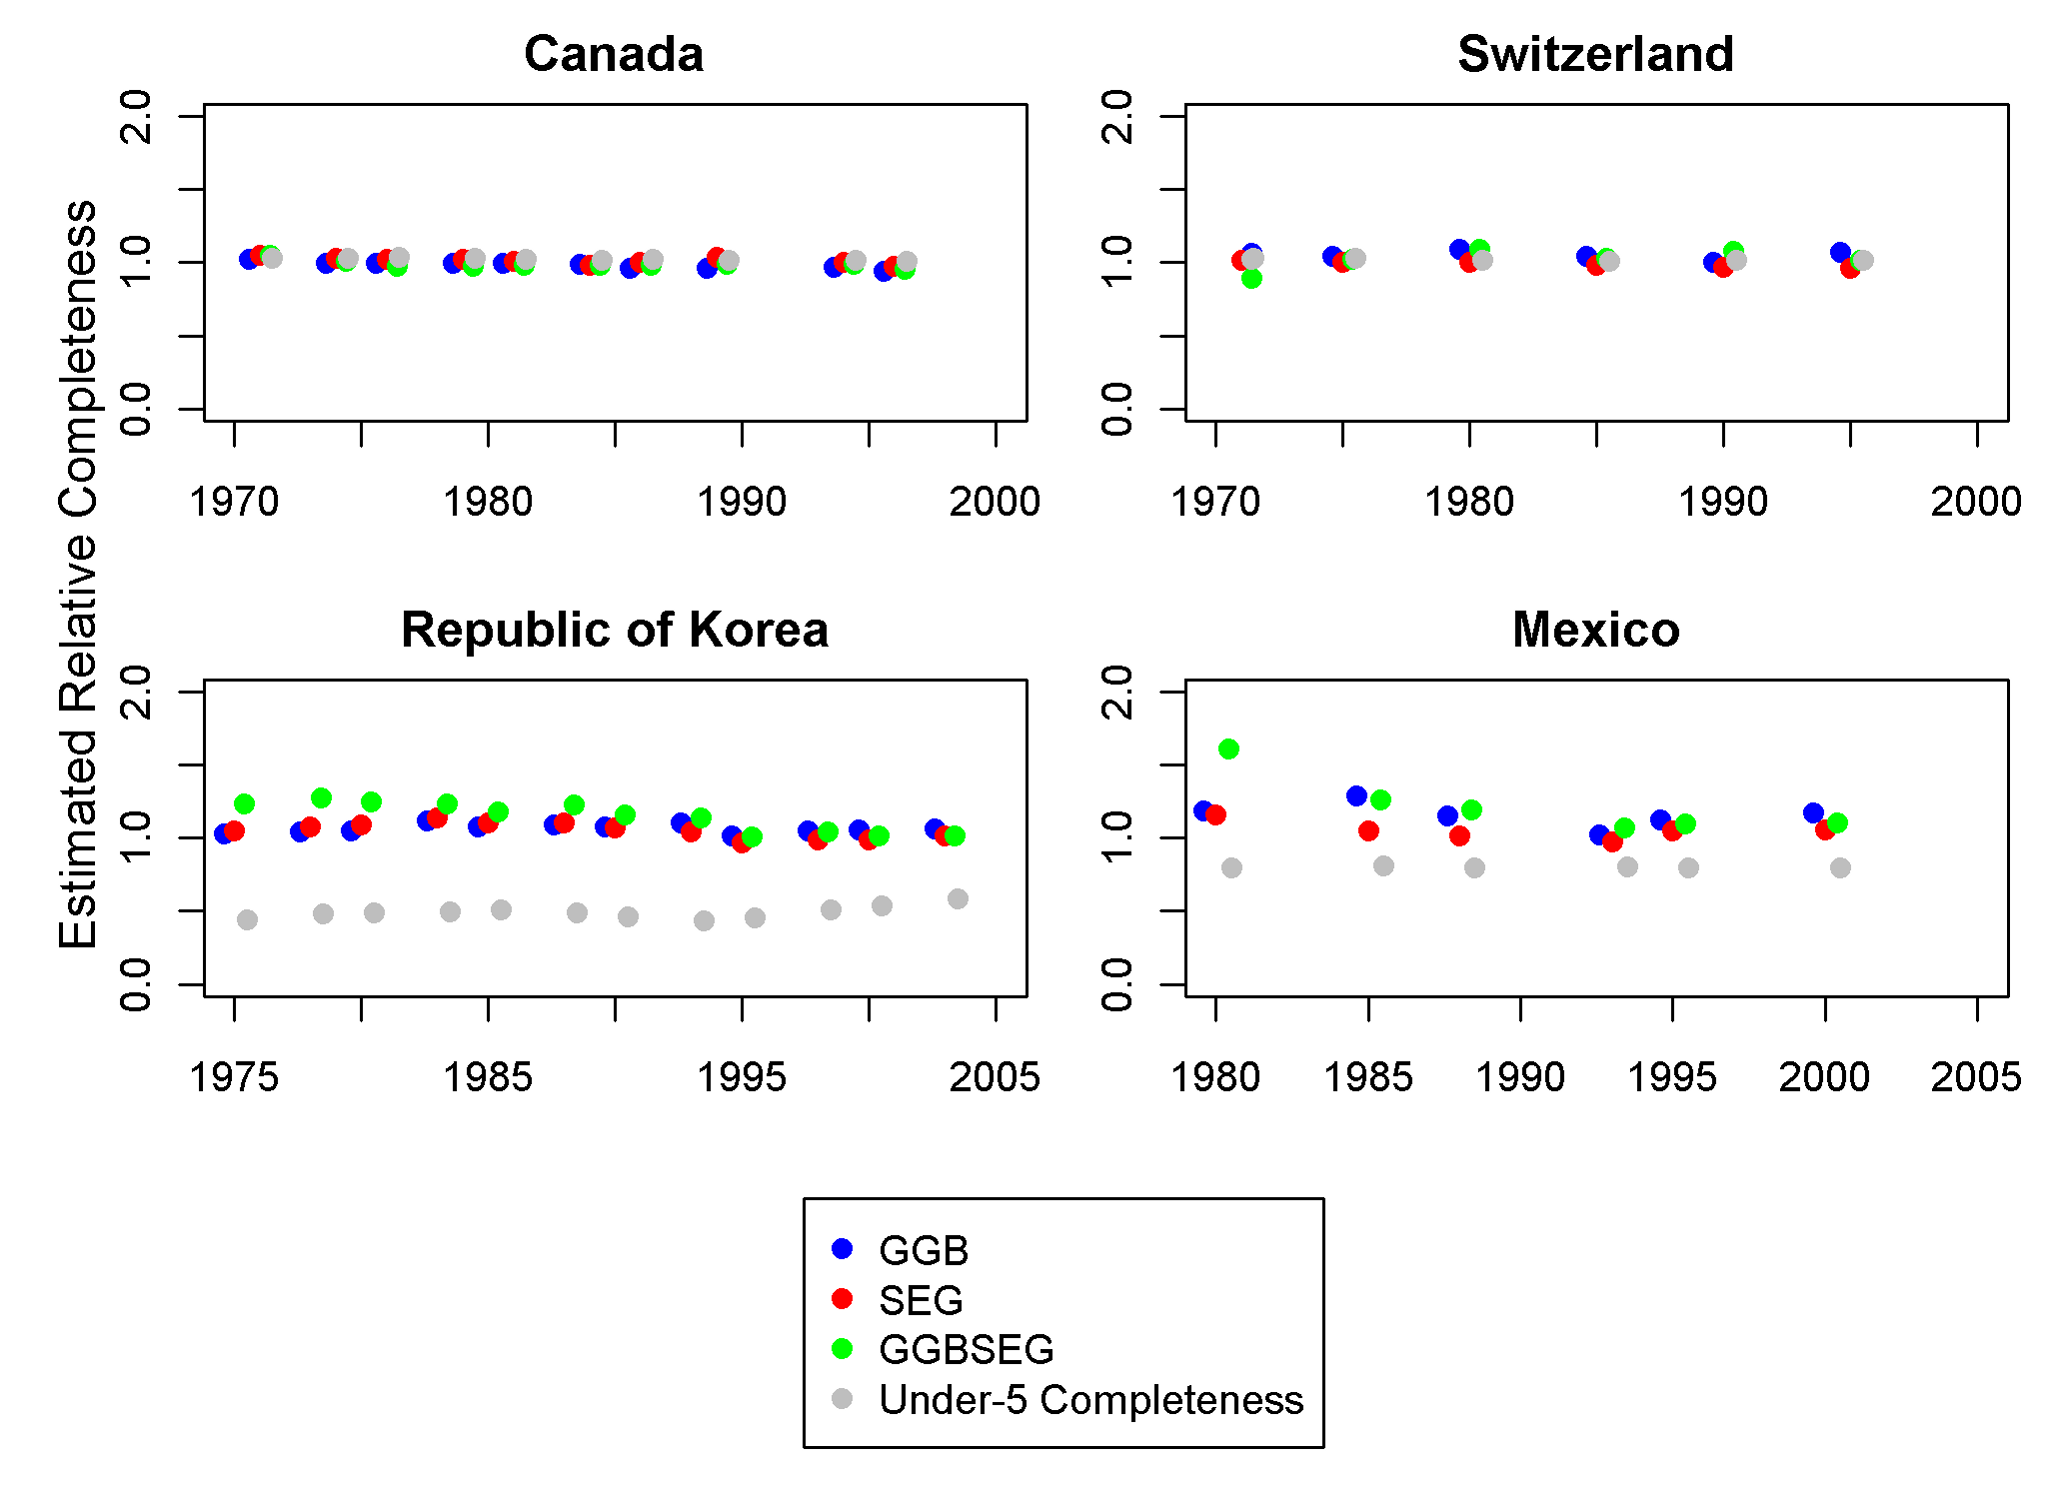 Application of optimal DDMs to Canada, Switzerland, Korea, and Mexico.